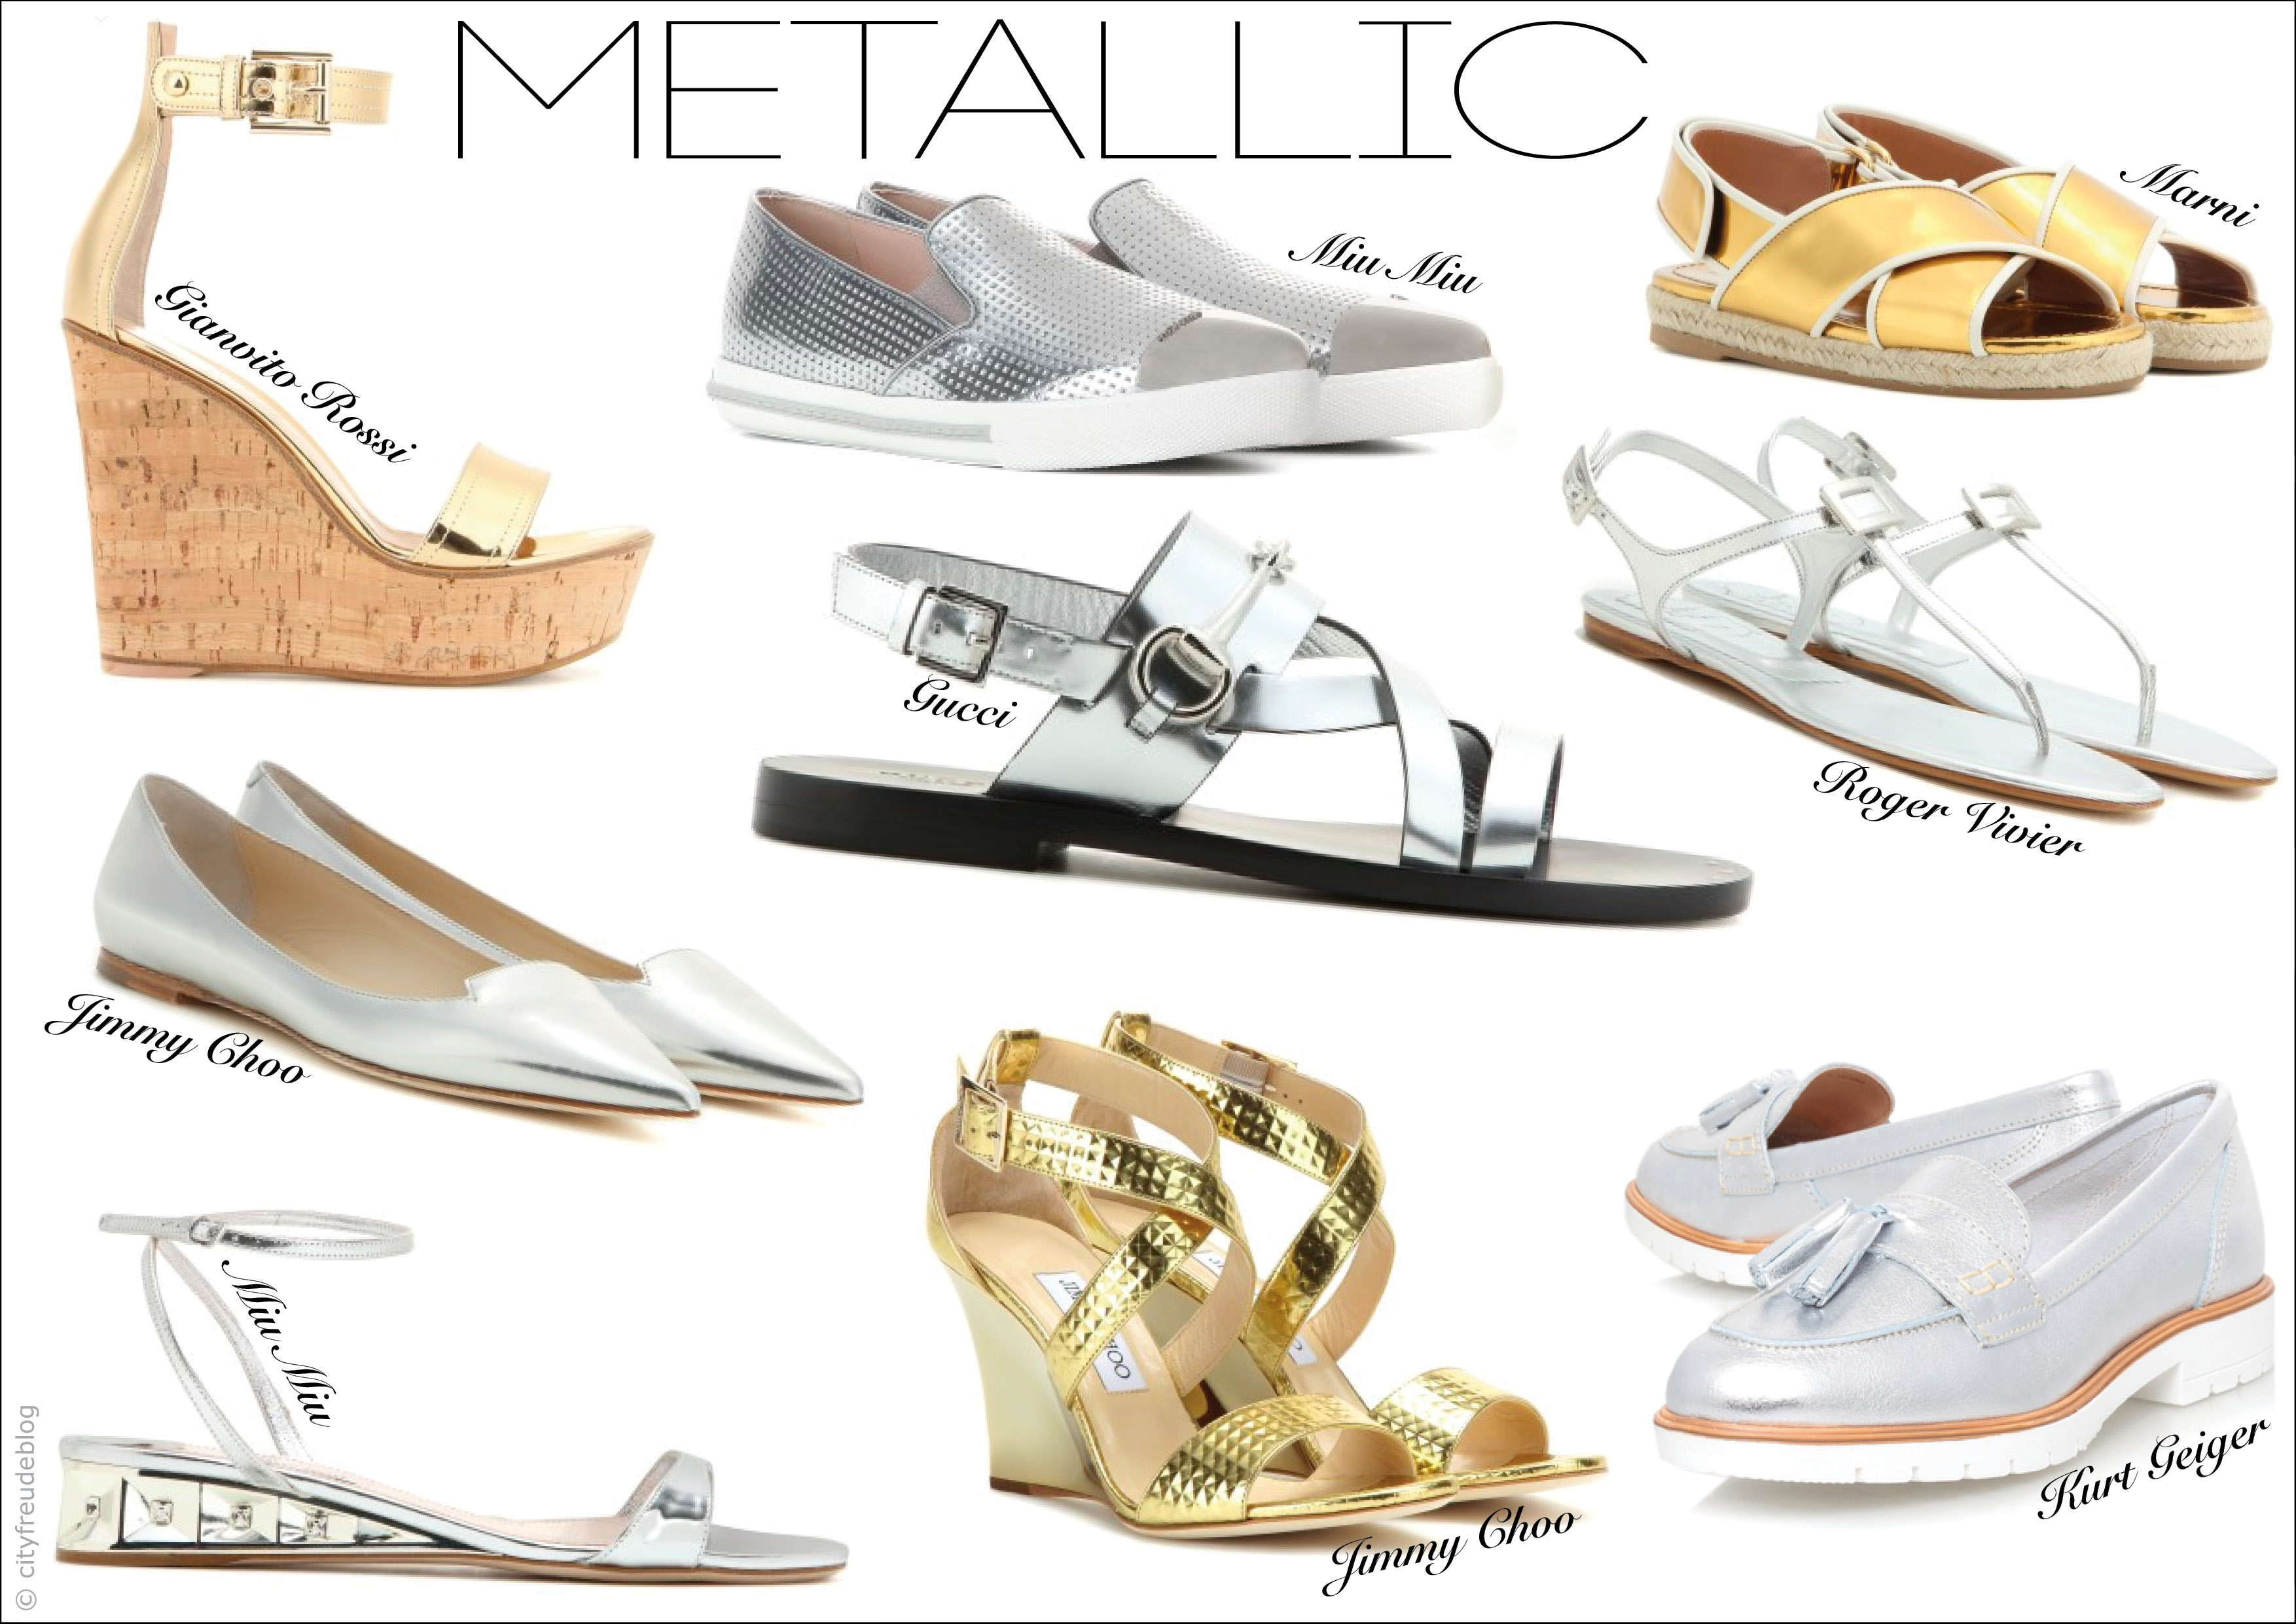 Metallic Fashion Trend. Leave a comment. Then you can try on metallic shoes, nail posh, sexy shiny clutches, etc. A shiny metallic clothing piece will underline your individuality. You can go for a metallic top, statement pleated skirt, cropped pants, midi skirt or mini skirt. If you want to underline your sophistication, then you should go.